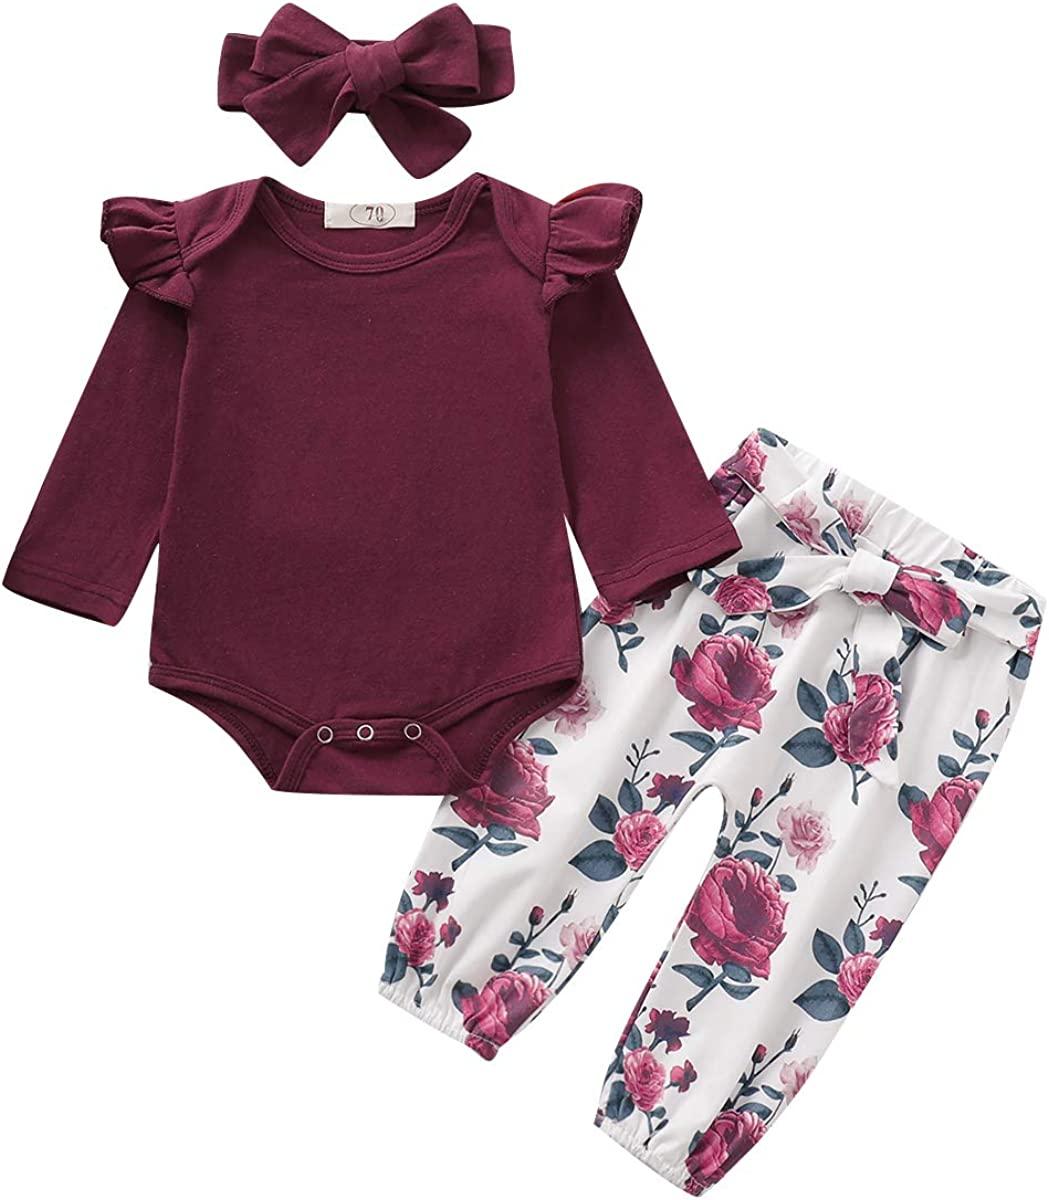 Newborn Baby Girl Clothes Toddler Girl Outfits Ruffle Long Sleeve Tops Pants with Hats and Headband Fall Summer Clothes Sets